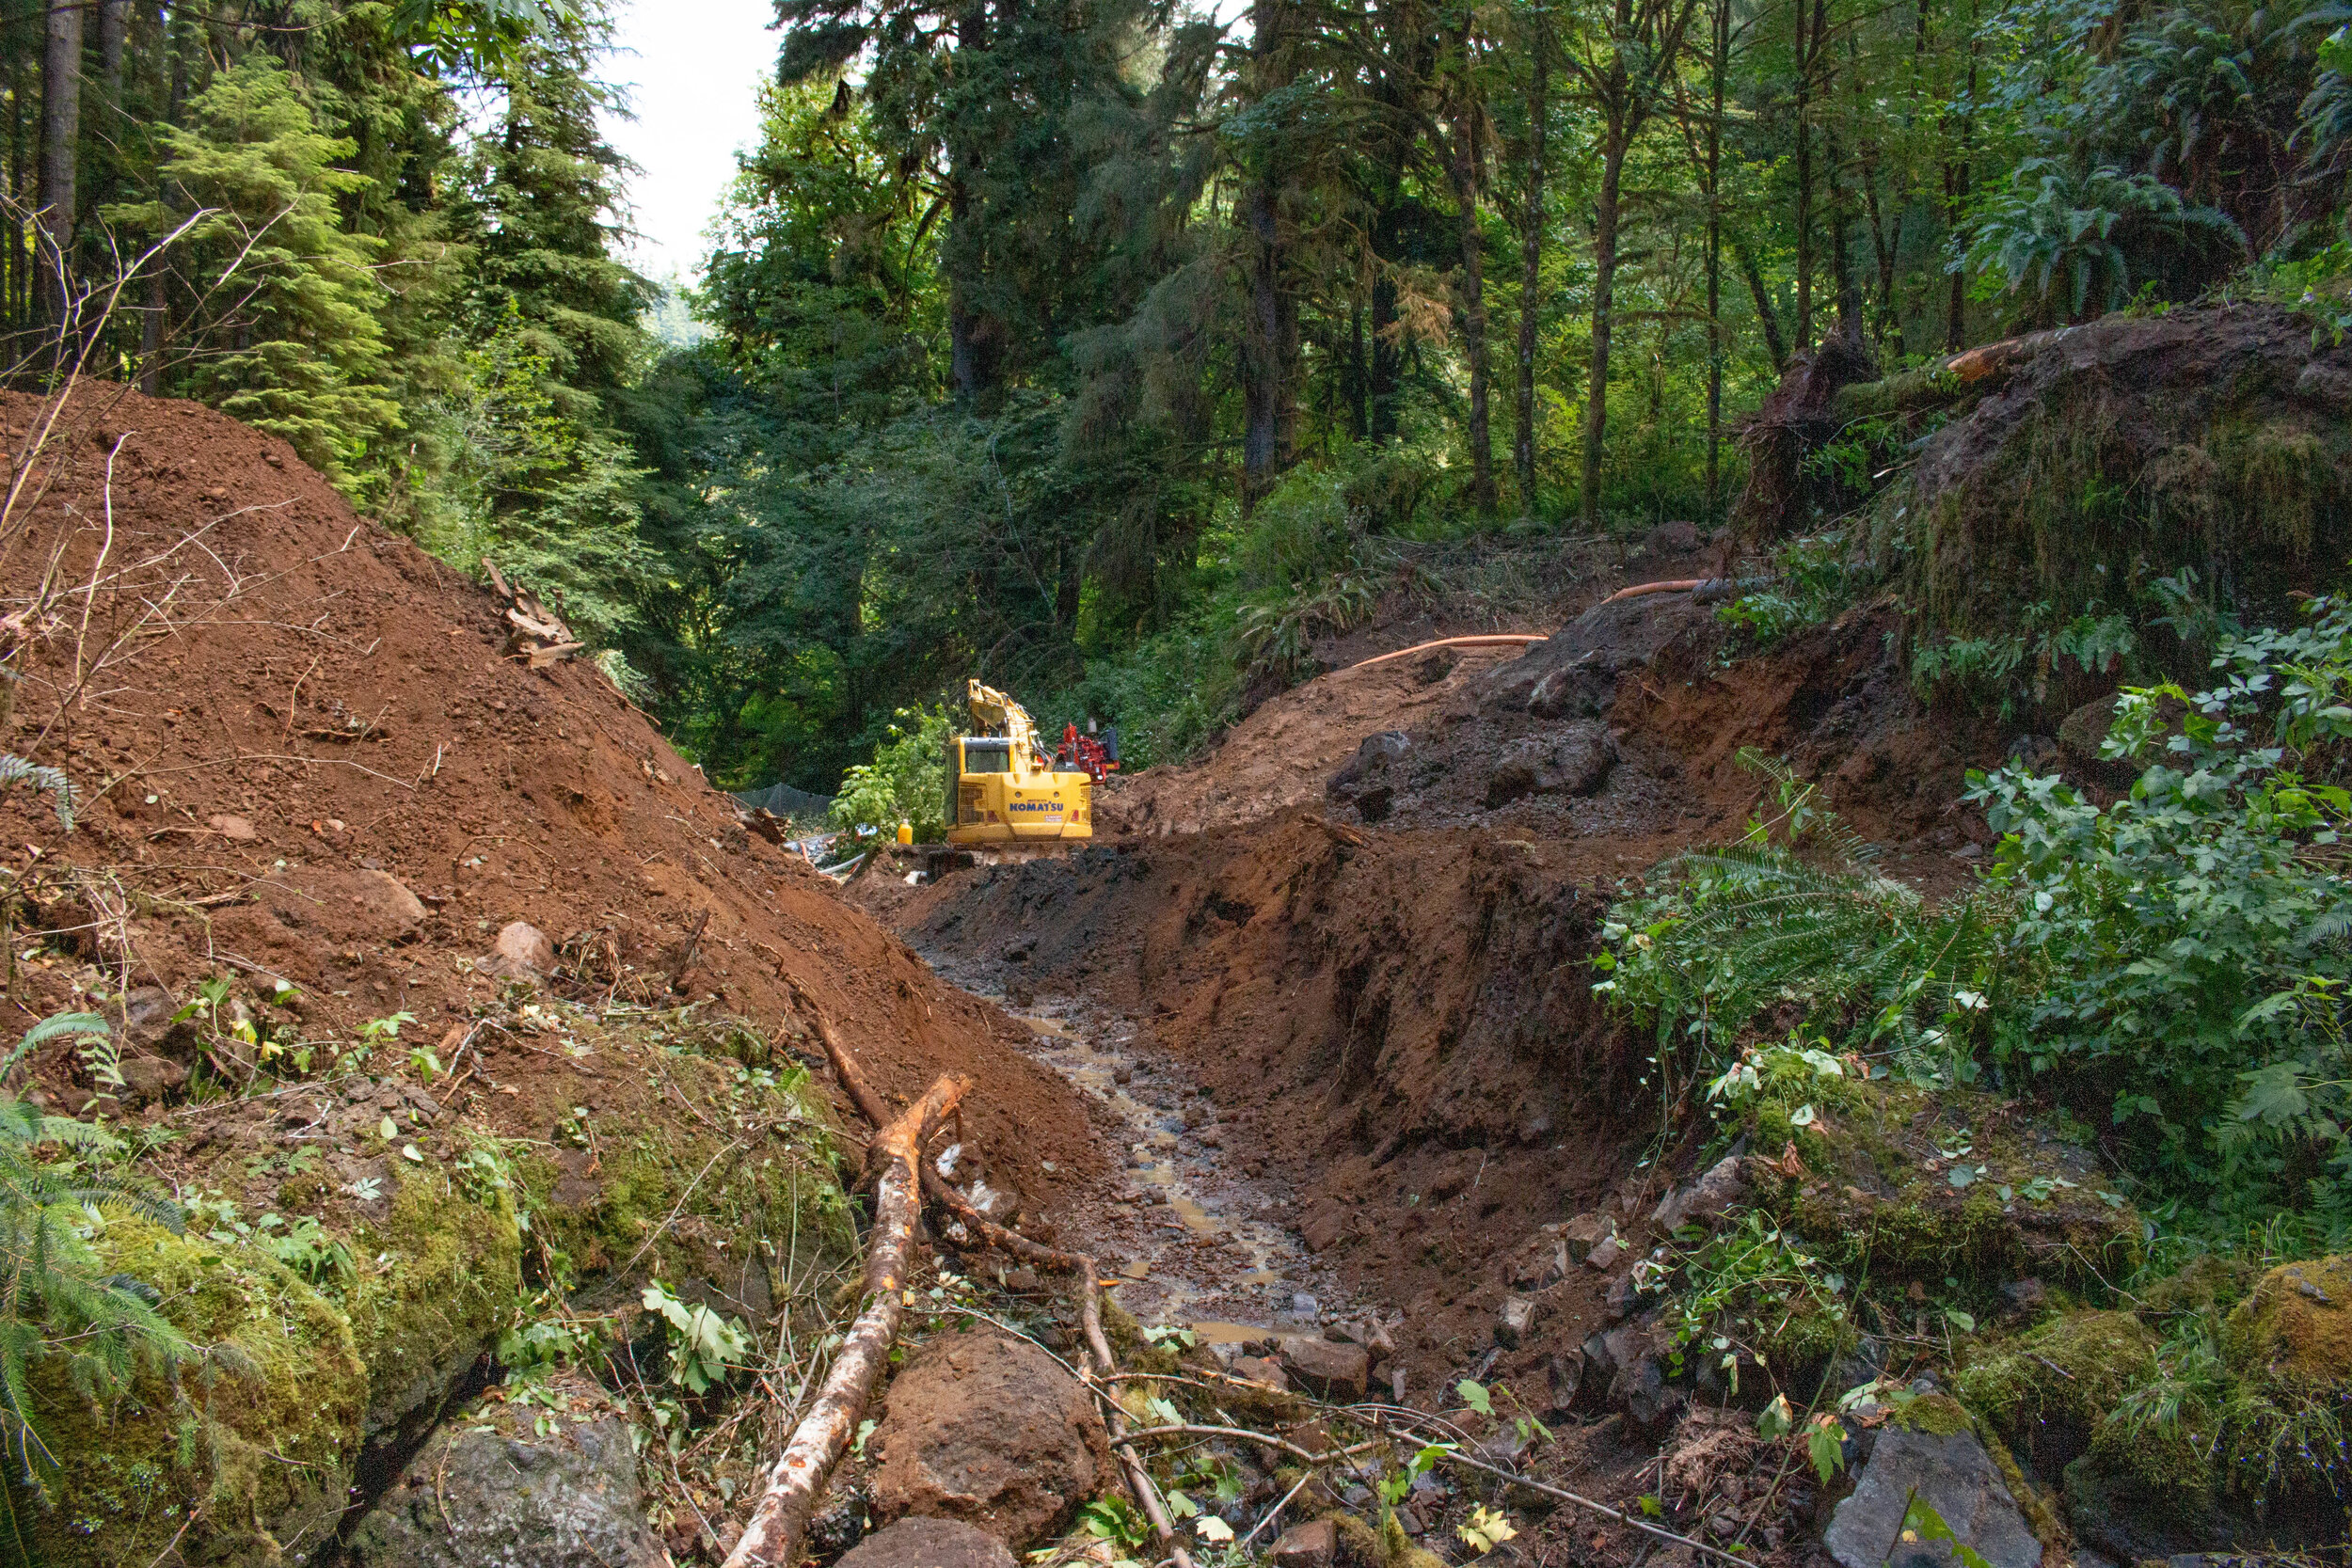 Directly after the old culvert was removed.